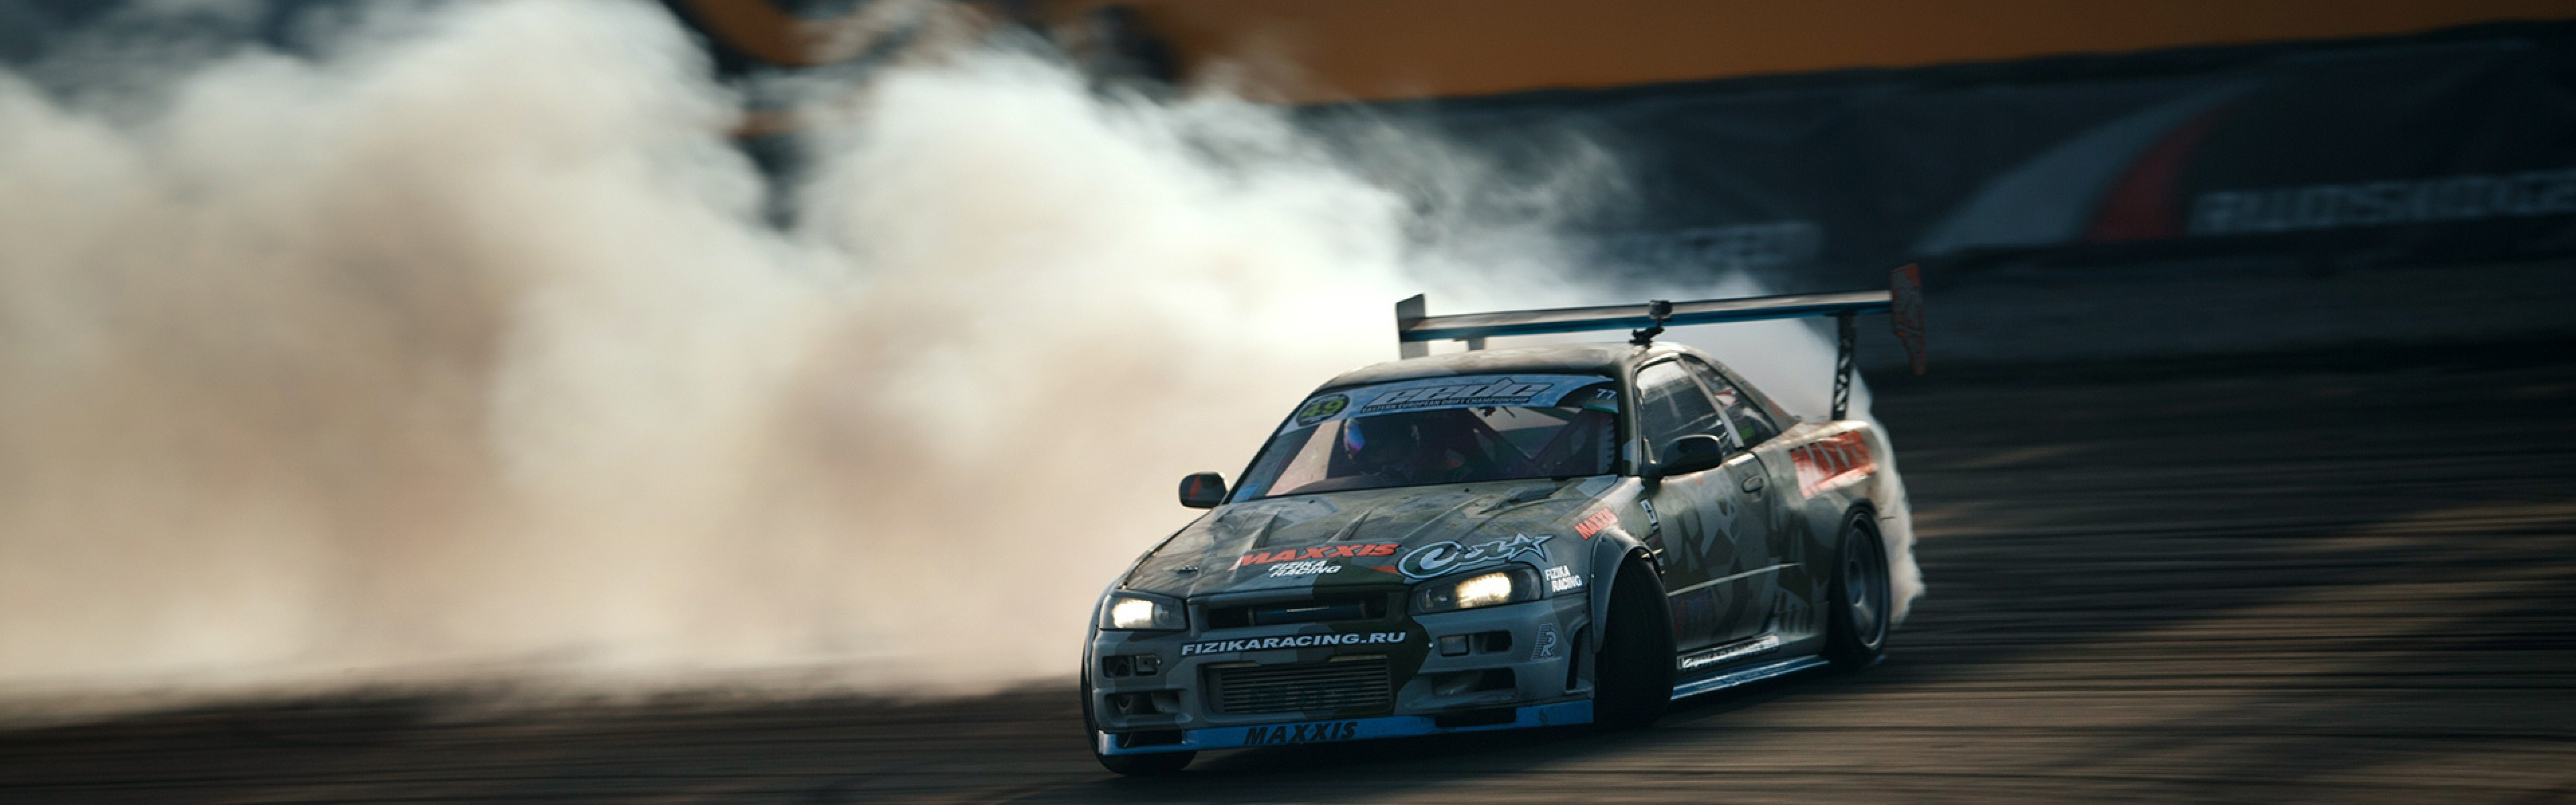 Drift Car Wallpaper 74 Images